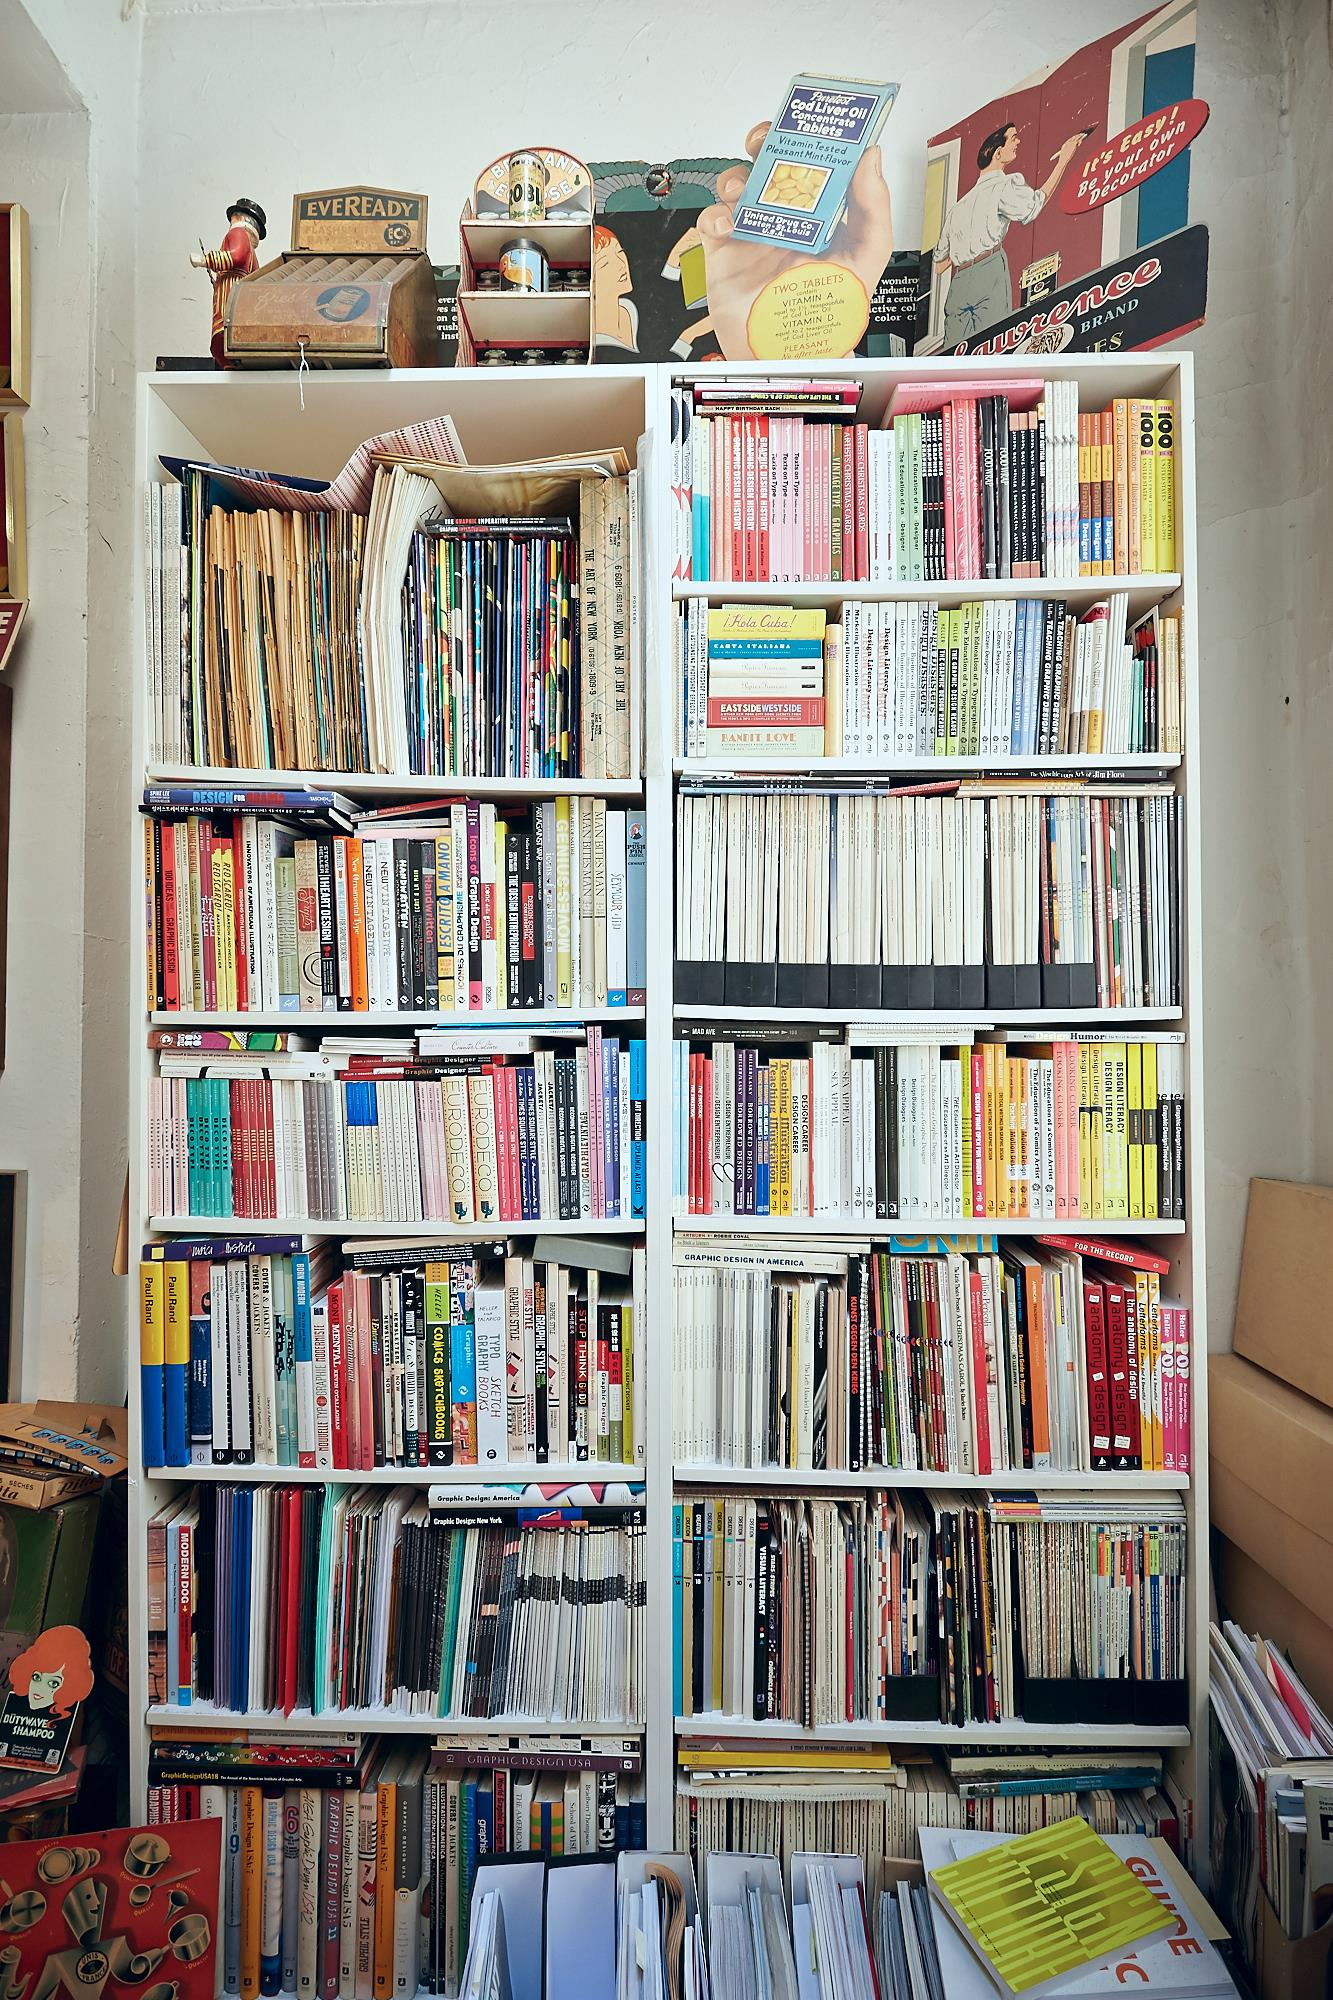 Steve has authored or co-authored all the books on these shelves. This man does not waste time.(Click on photo to enlarge)